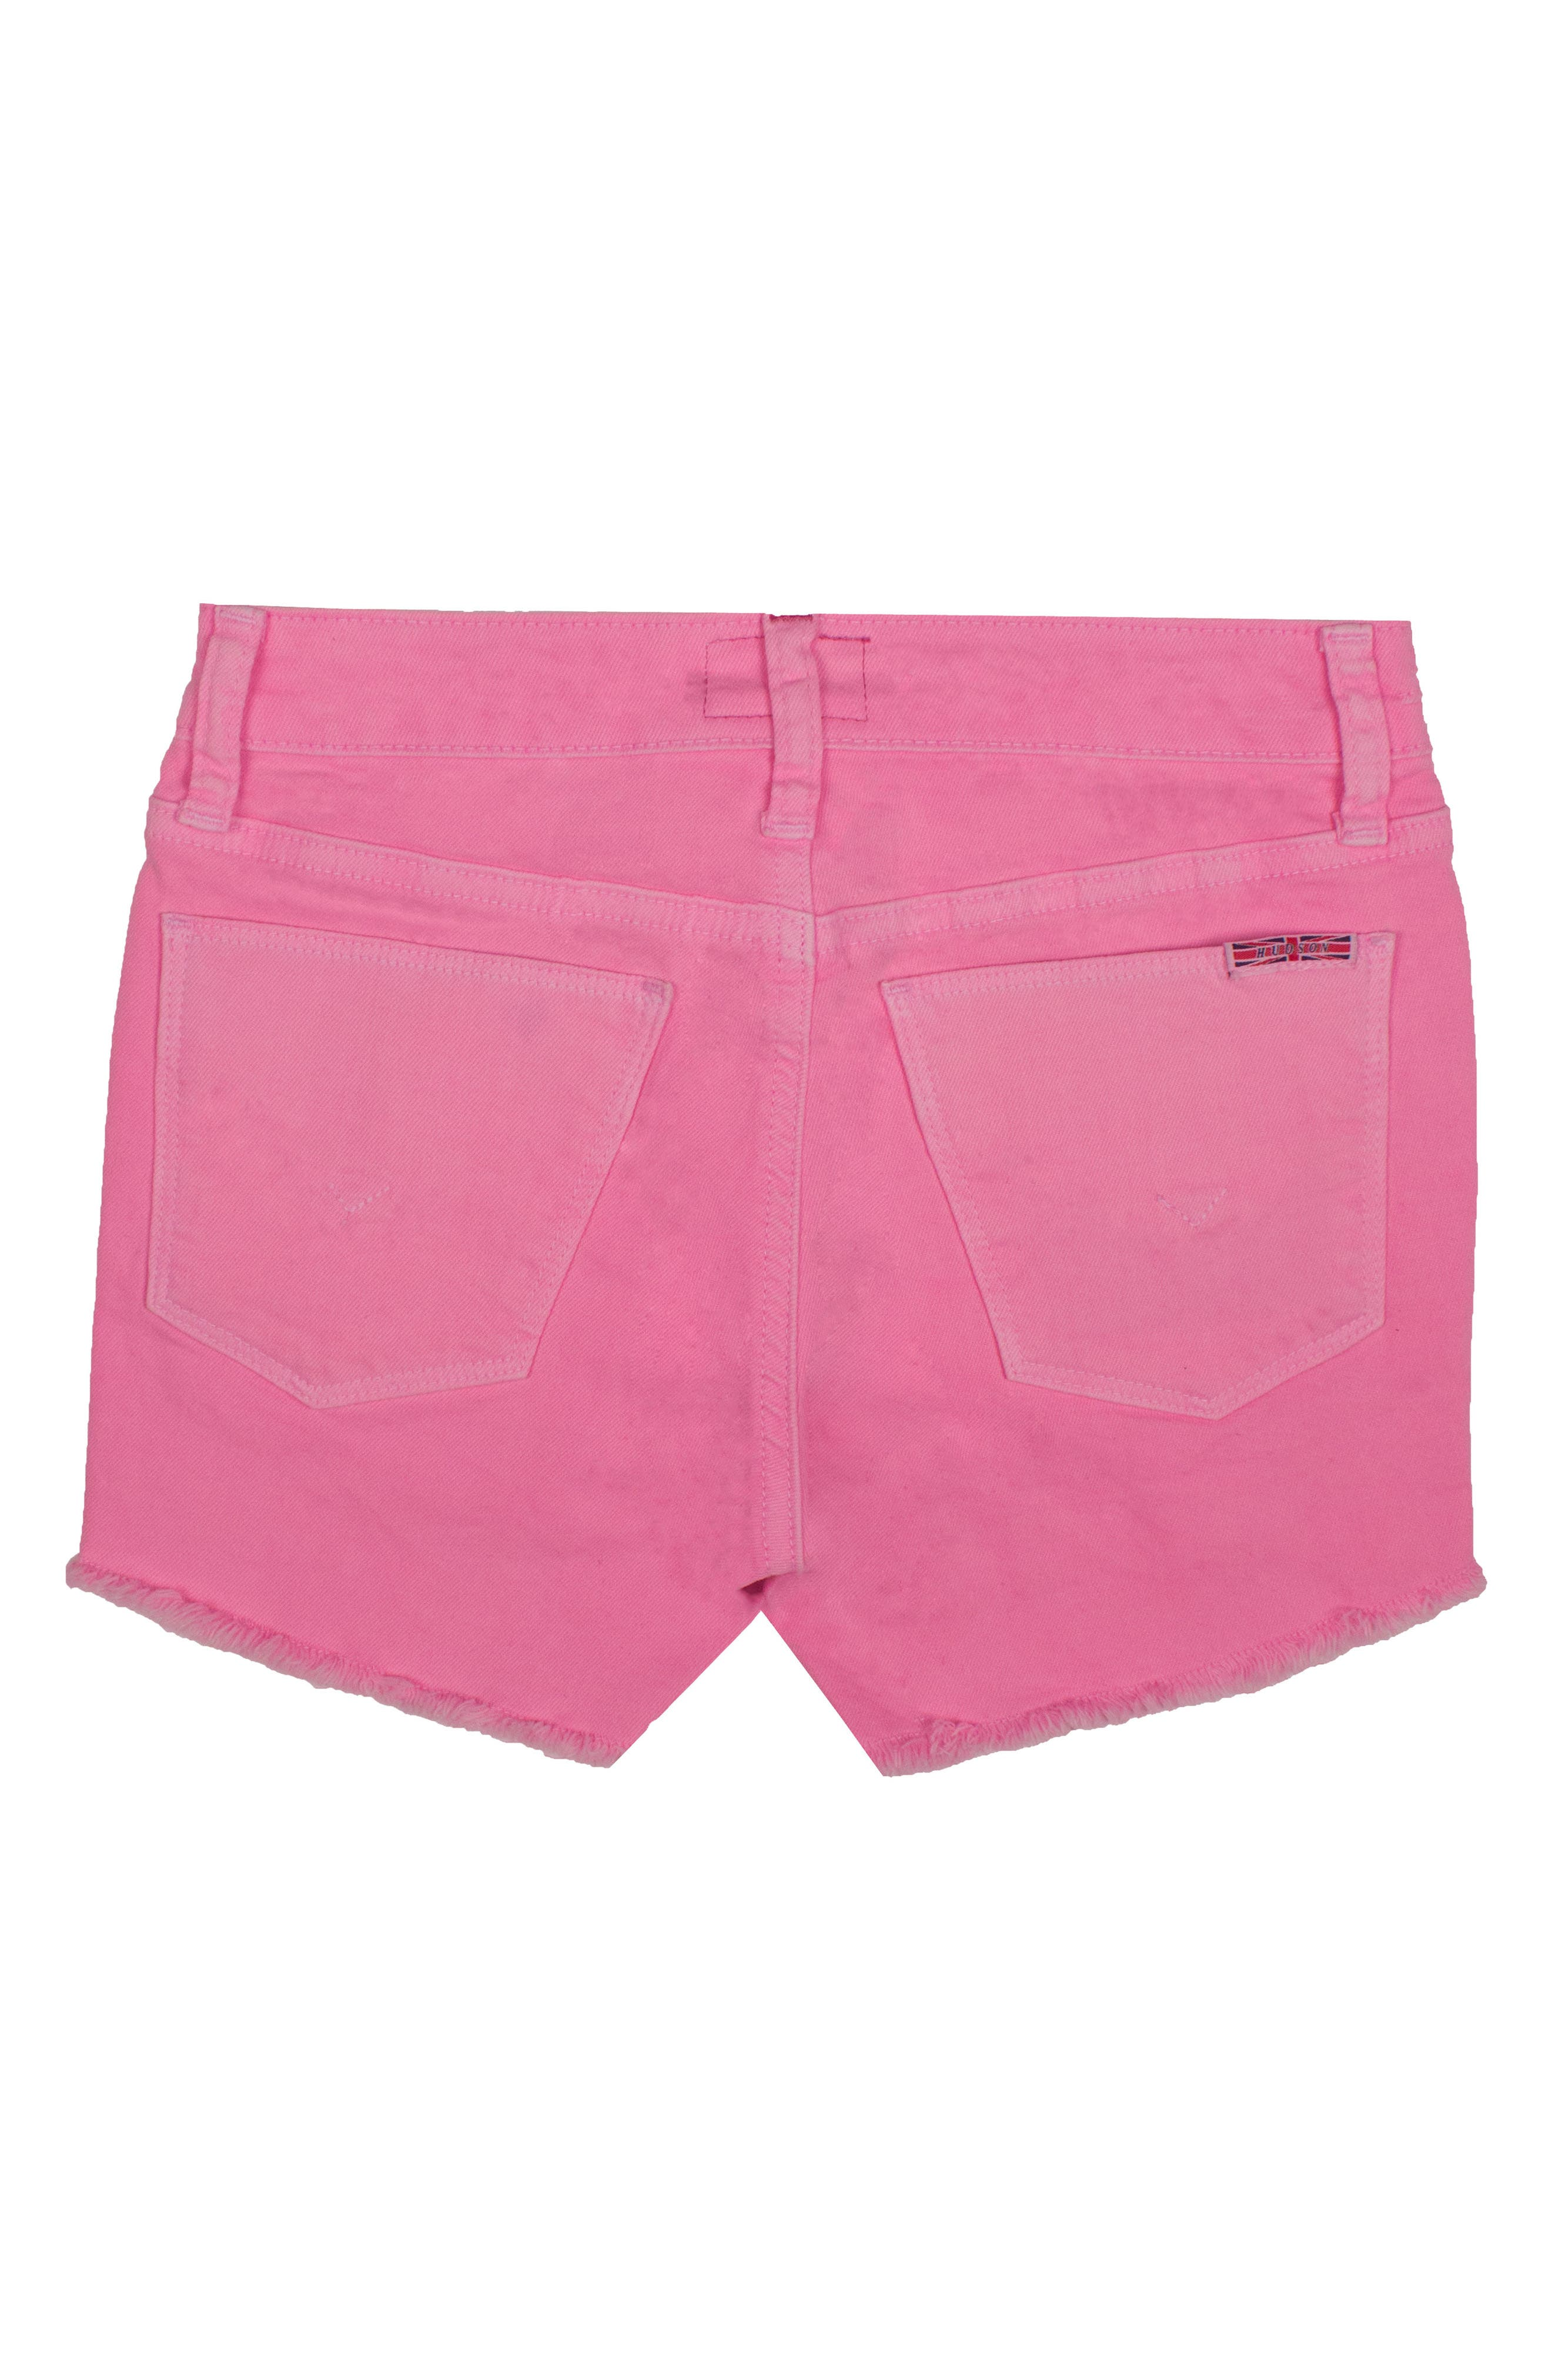 Ava Shorts,                             Alternate thumbnail 2, color,                             Neon Pink